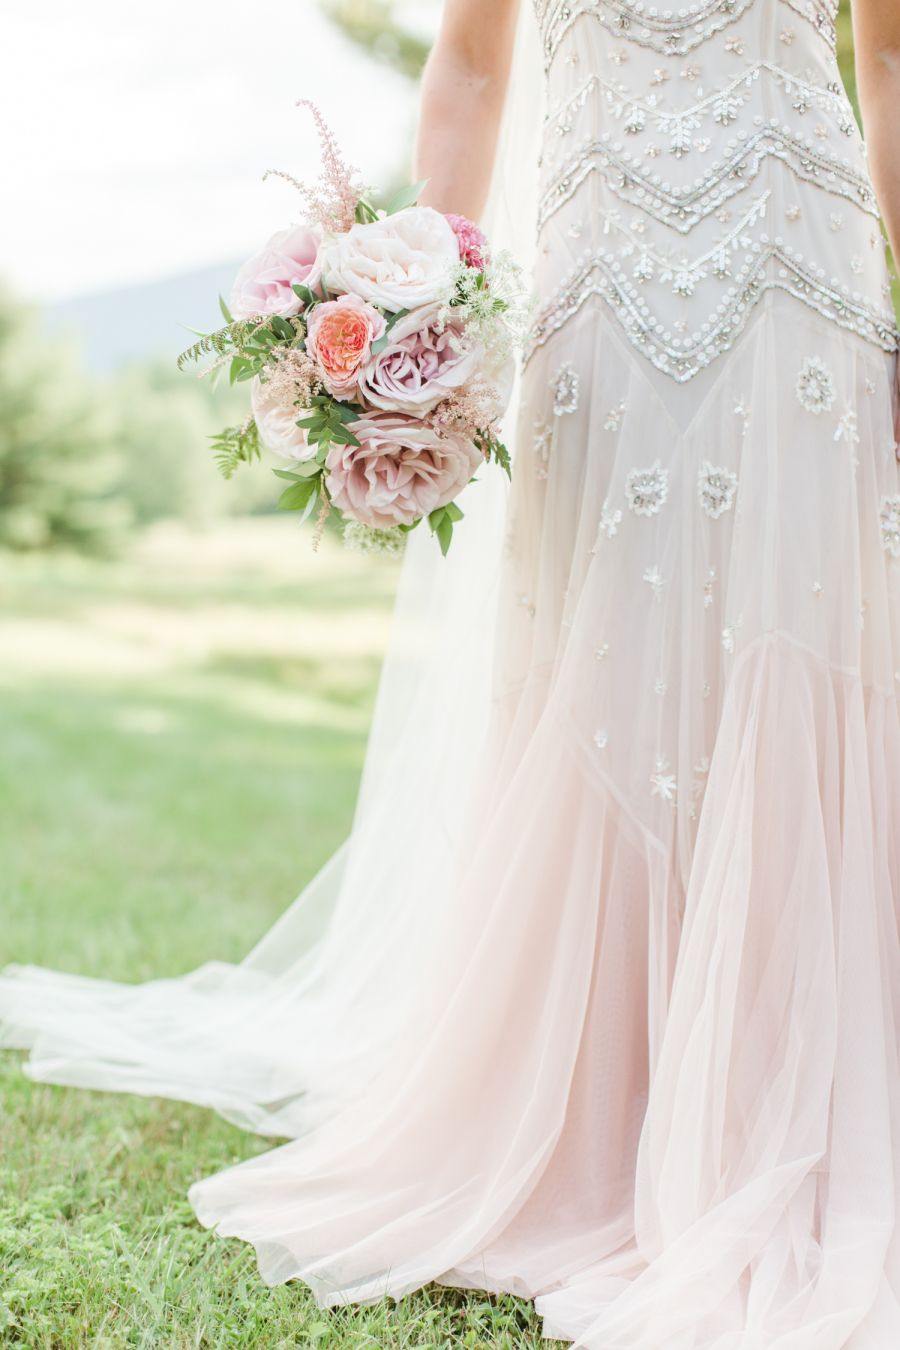 Design wedding dress  A Blushy Pink Gown in Perfect Vermont Setting  Event design Floral